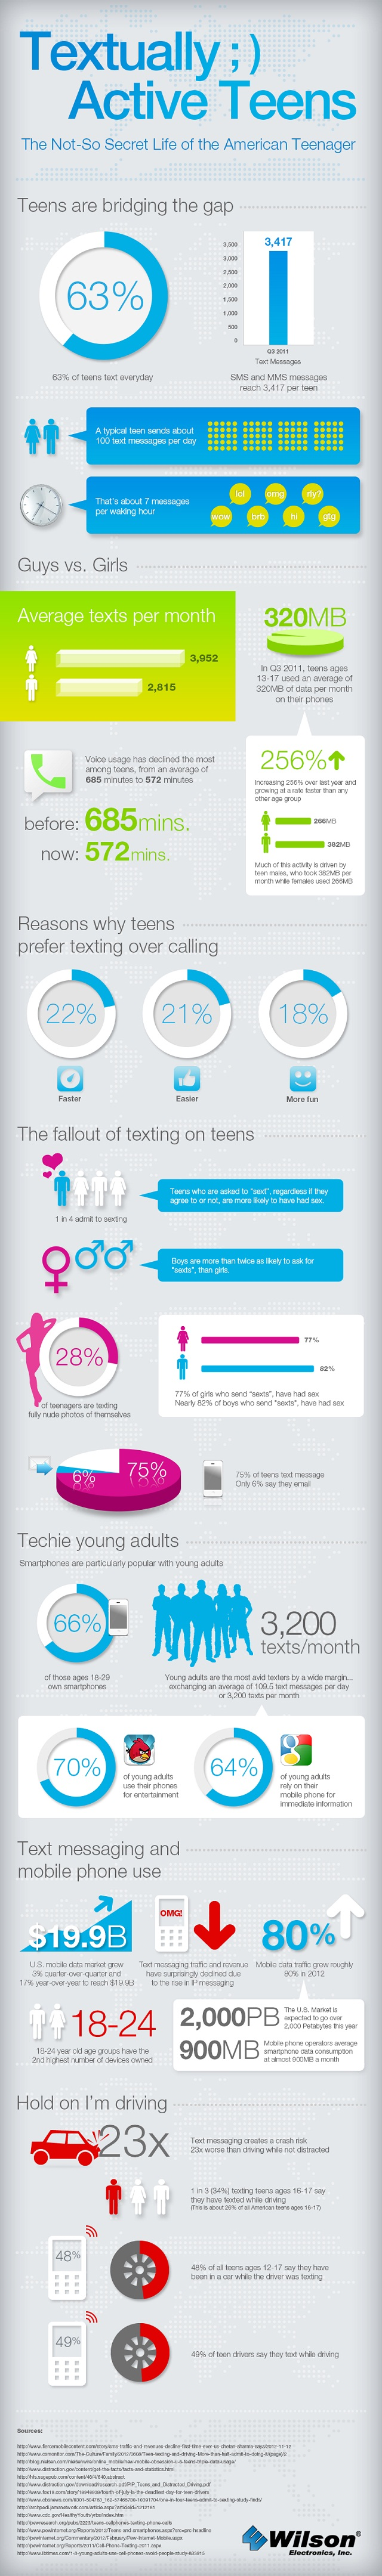 368014-infographic-teen-texting